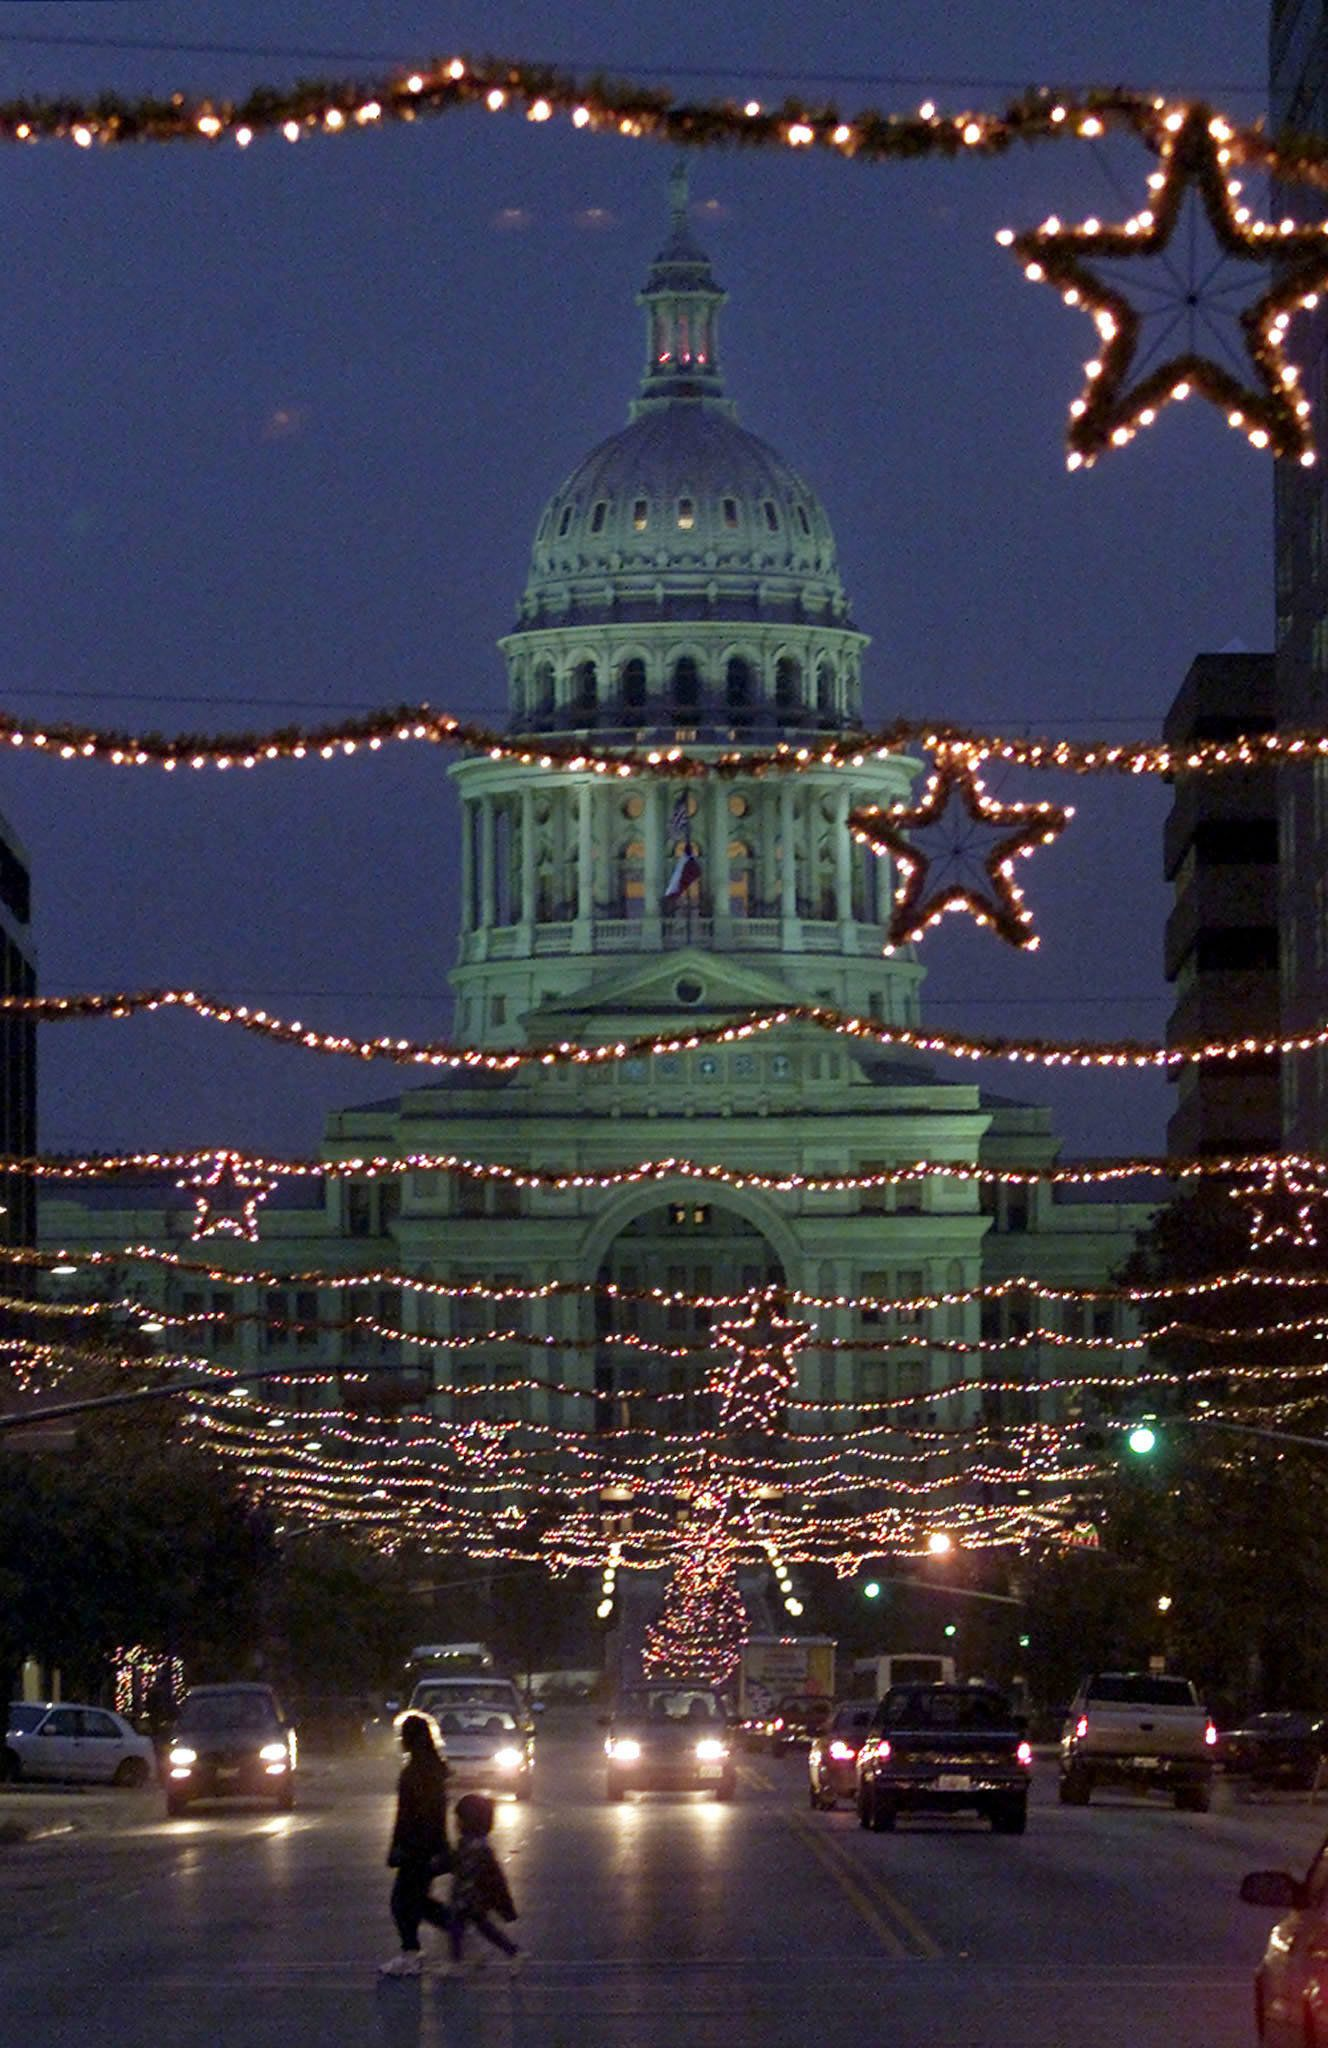 The Texas state capitol building is framed in Christmas lights in Austin, December 23, 2000. President-elect George W. Bush spent the day unwinding at his ranch in Crawford, Texas, after spending much of the week assembling nearly half of his Cabinet, despite a transition period cut short by the recount deadlock. REUTERS/Adrees A.  AAL/RCS